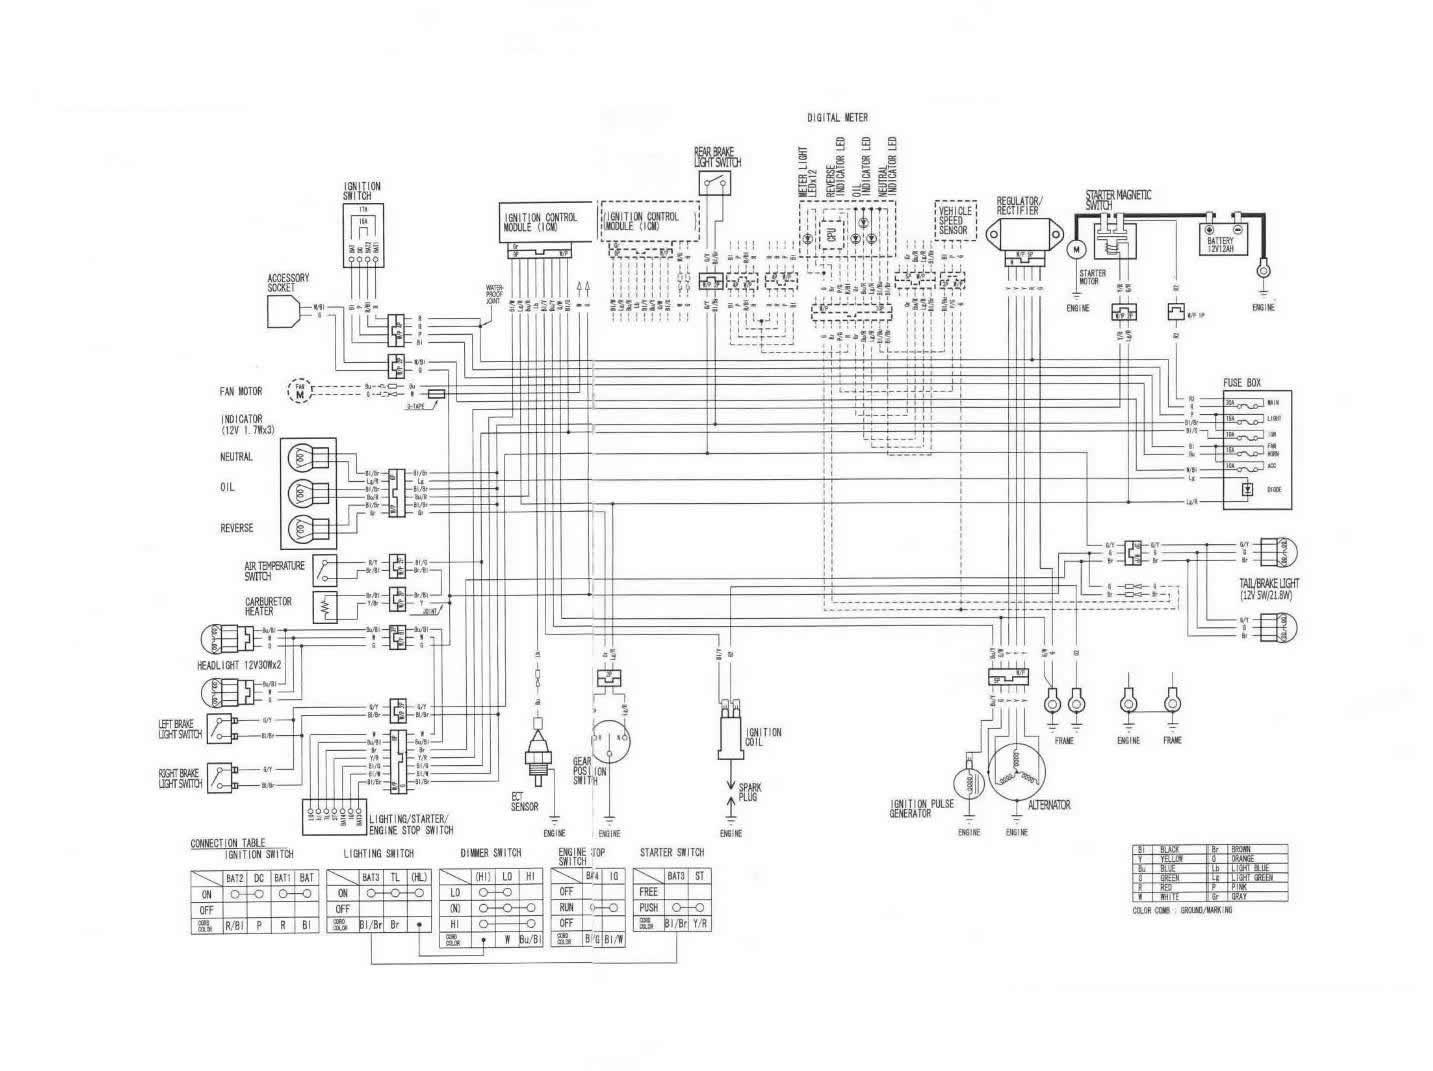 Bluebird Lift Wiring Diagram Wiring Library